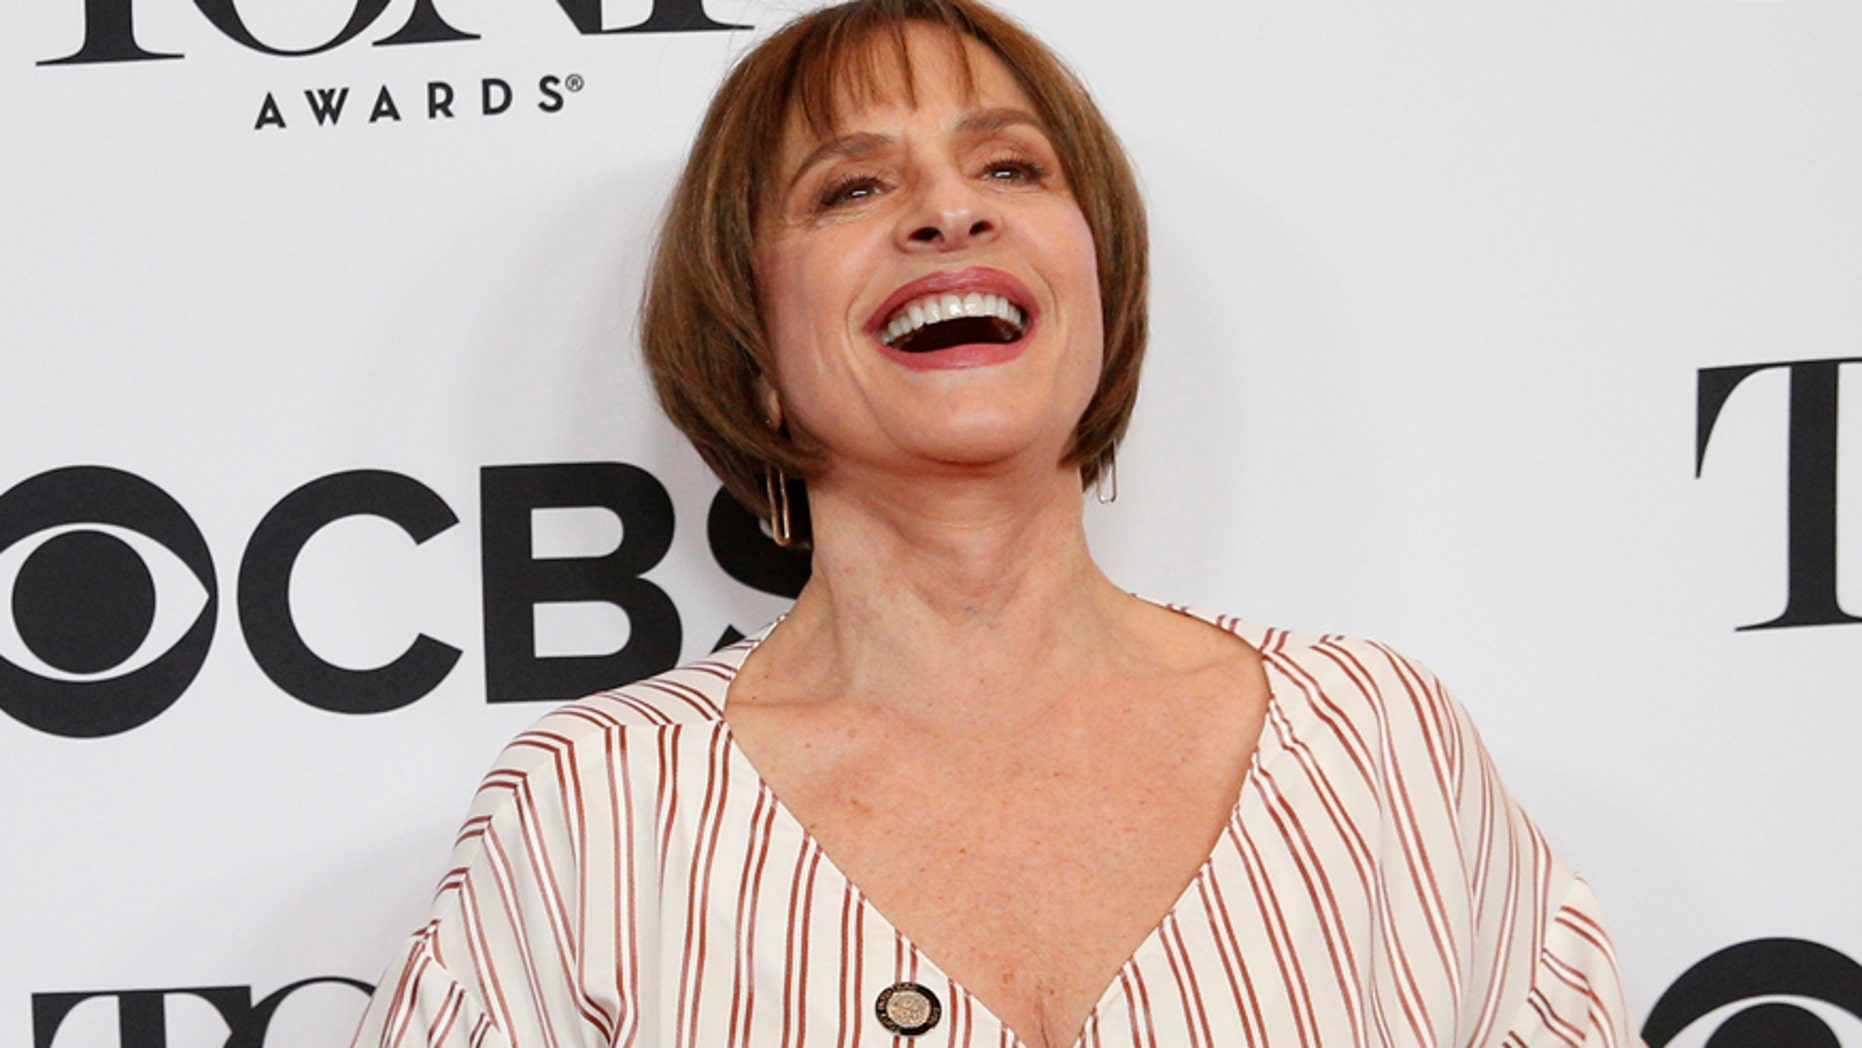 Actor Patti LuPone arrives for the 2017 Tony Awards Meet The Nominees Press Reception in New York, U.S., May 3, 2017.  REUTERS/Brendan McDermid - RTS151WU